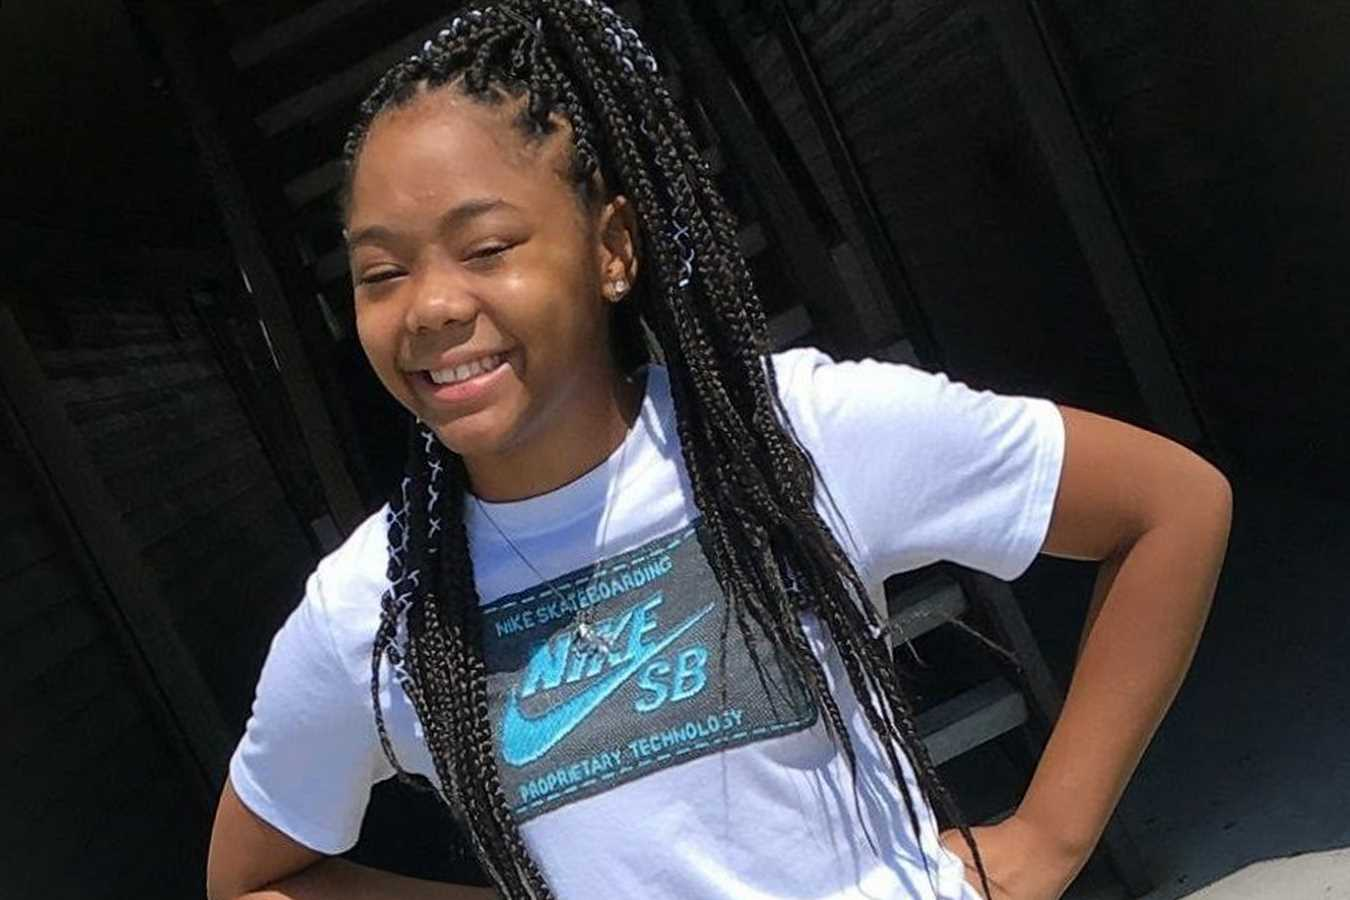 Houston Girl Who Died After Being Attacked by Classmates Had Undiagnosed Brain Tumor, Says Mom